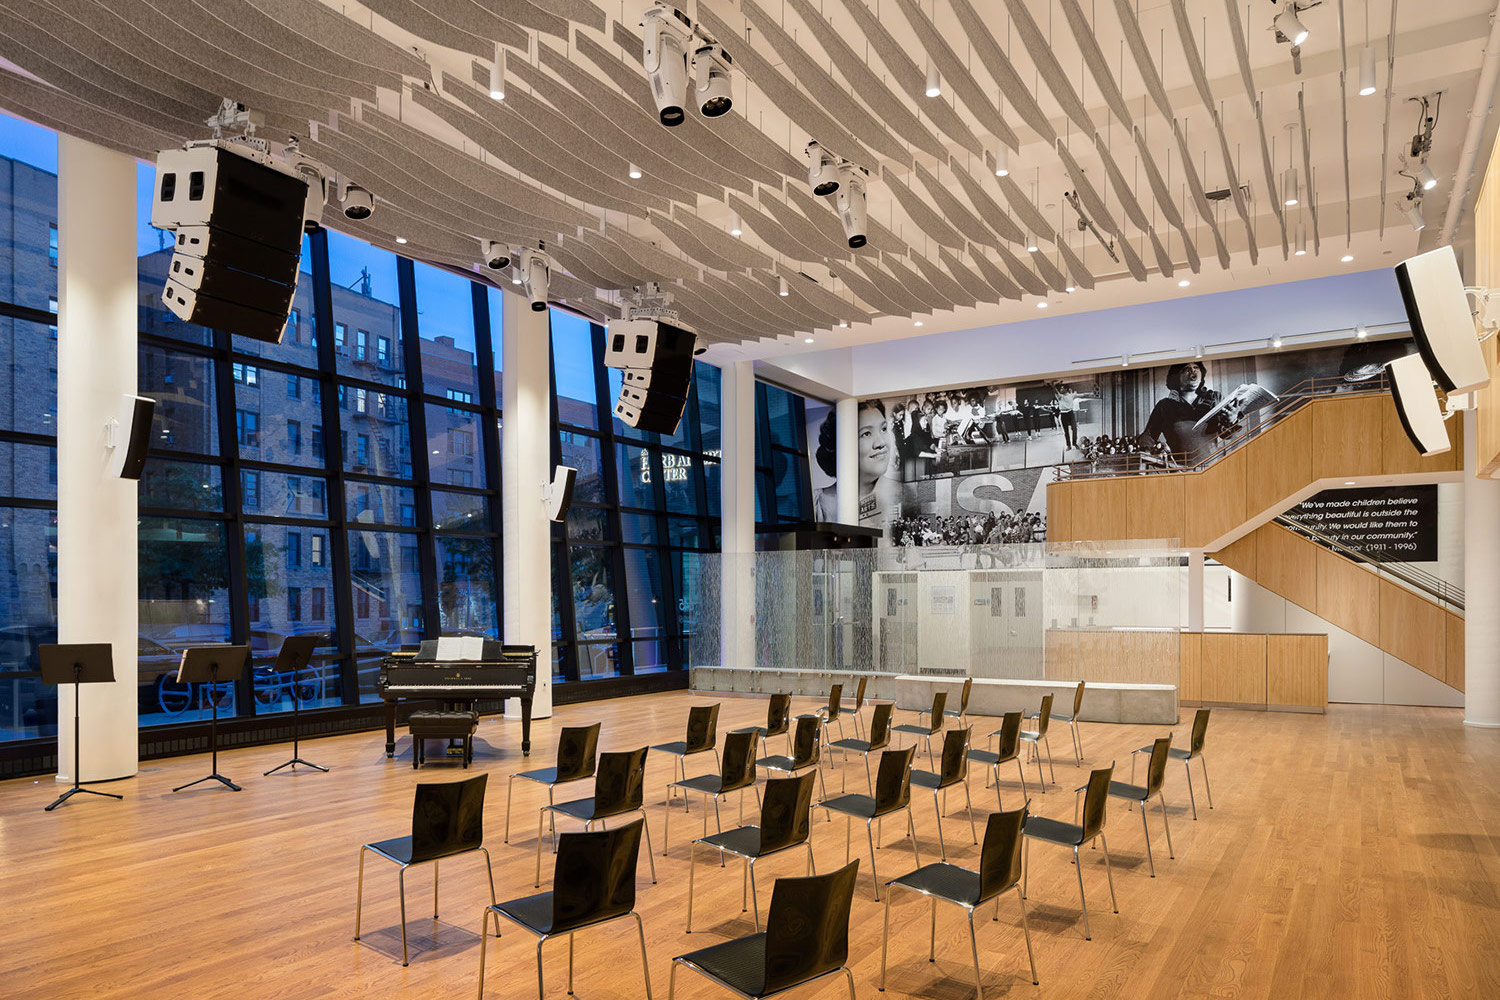 The renovated Harlem School of the Arts. WSDG was in charge of the acoustics and systems integration.